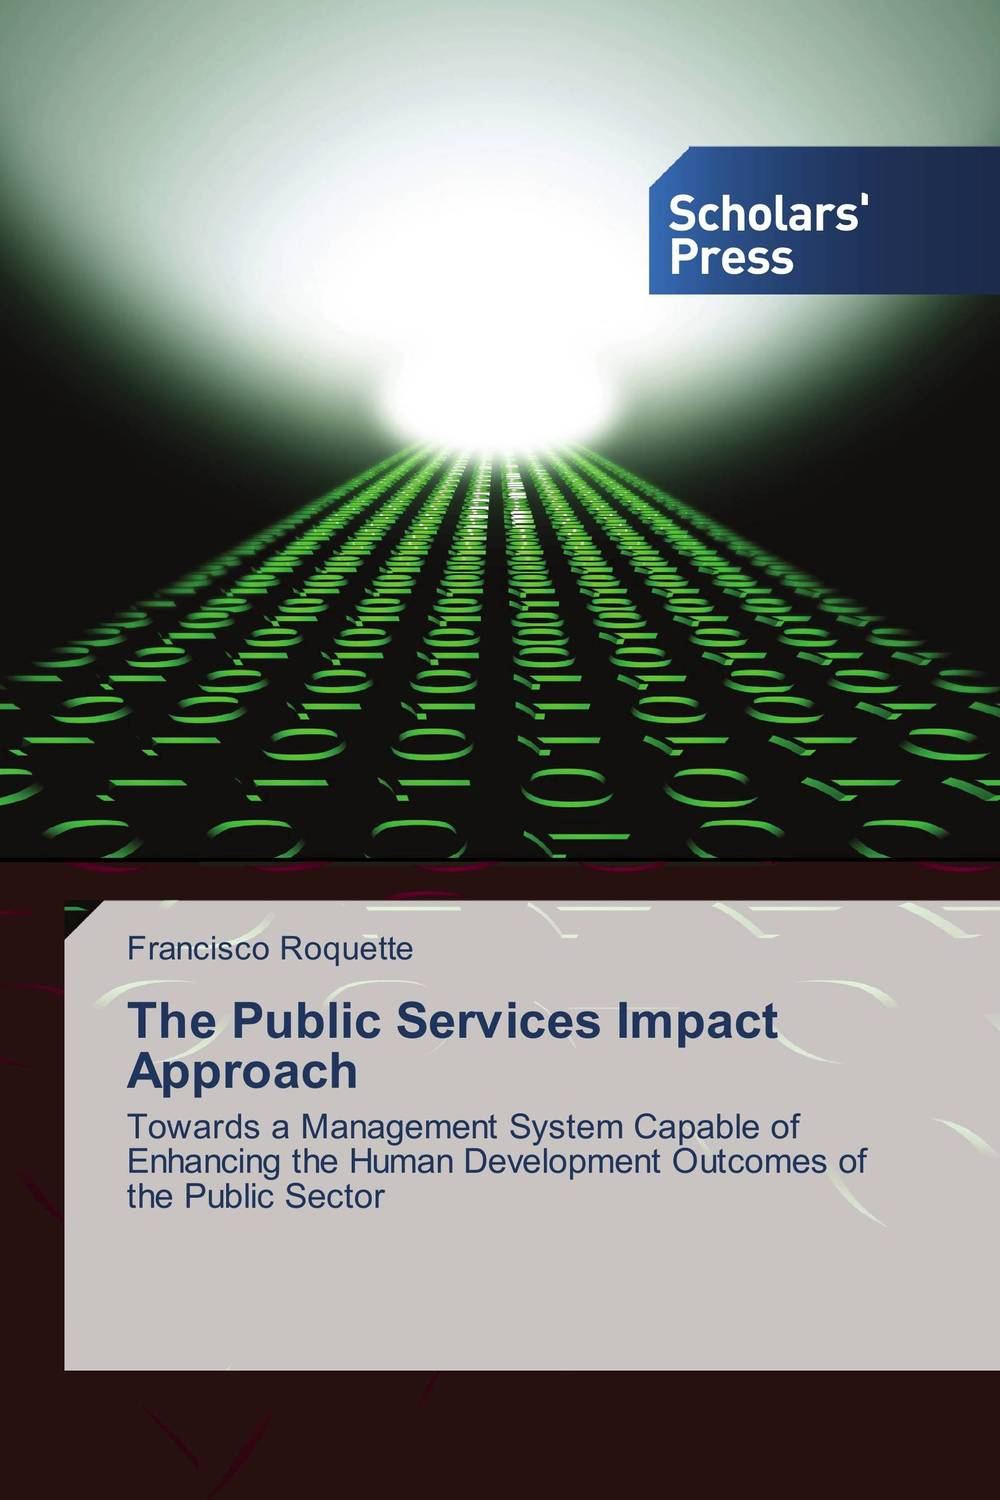 The Public Services Impact Approach evaluation of the impact of a mega sporting event